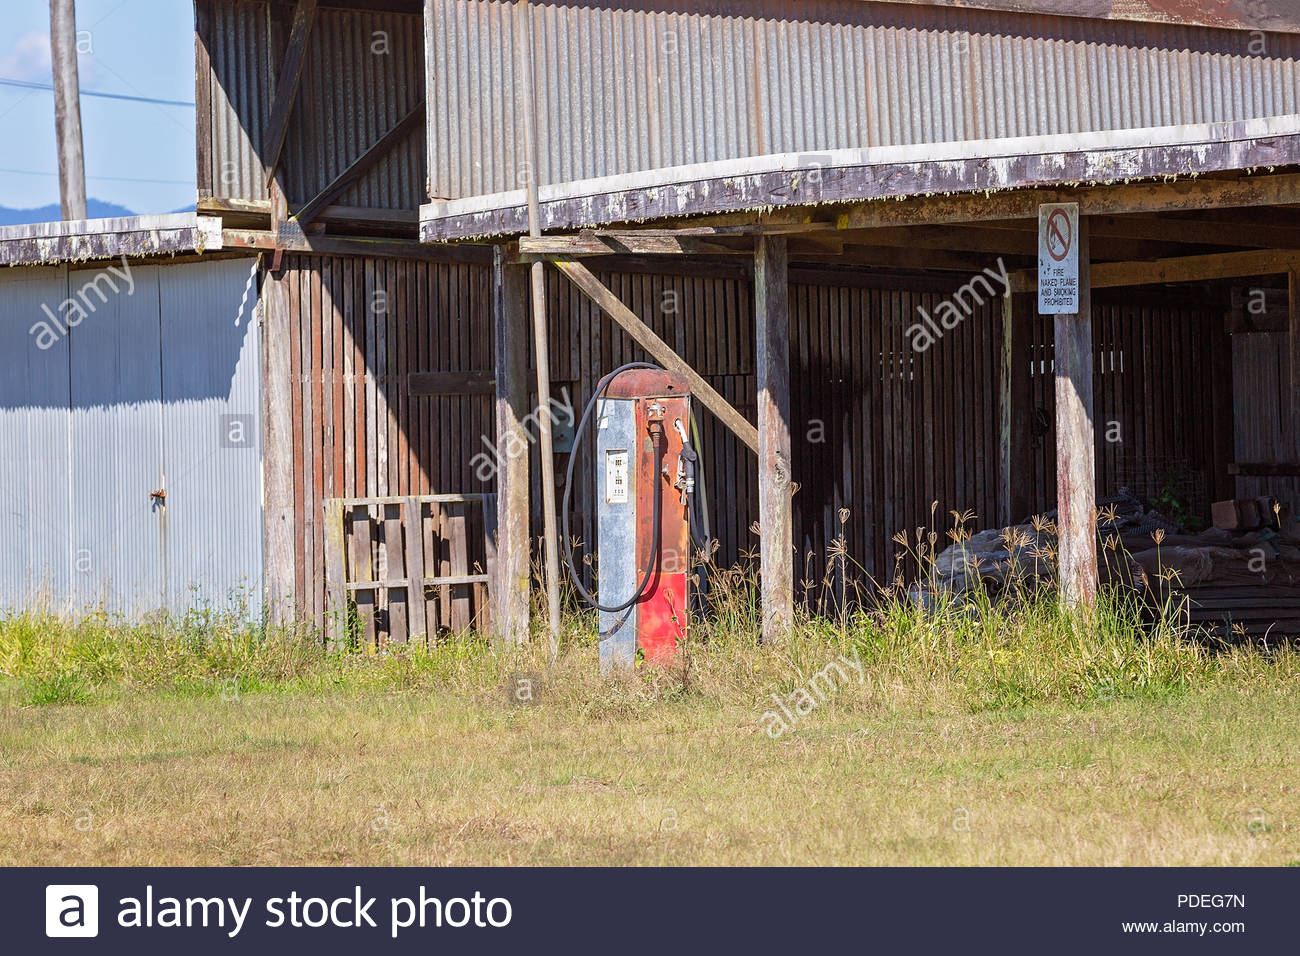 An old decrepit shed with disused petrol pump at front - Stock Image